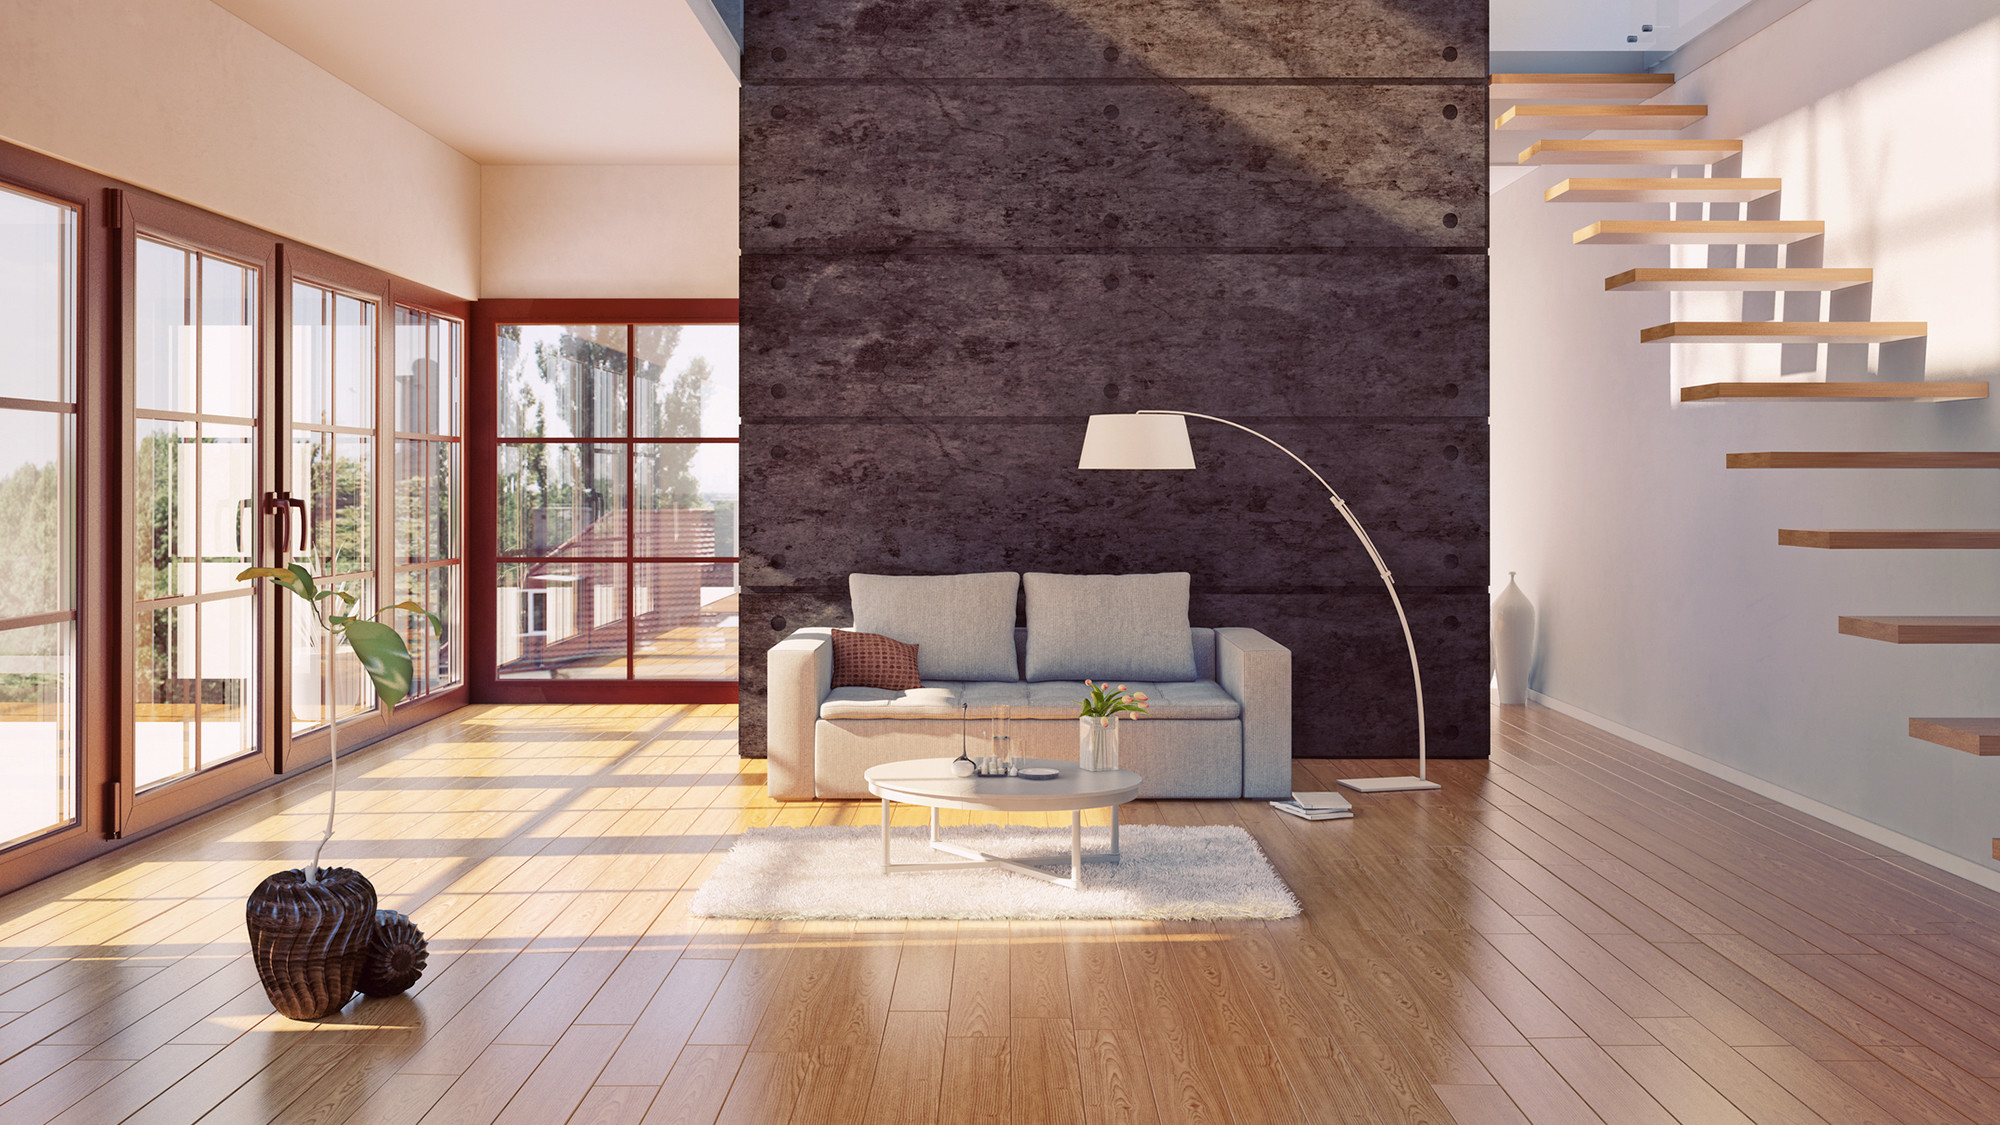 Hardwood Floor Meets Carpeted Stairs Of Do Hardwood Floors Provide the Best Return On Investment Realtor Coma within Hardwood Floors Investment